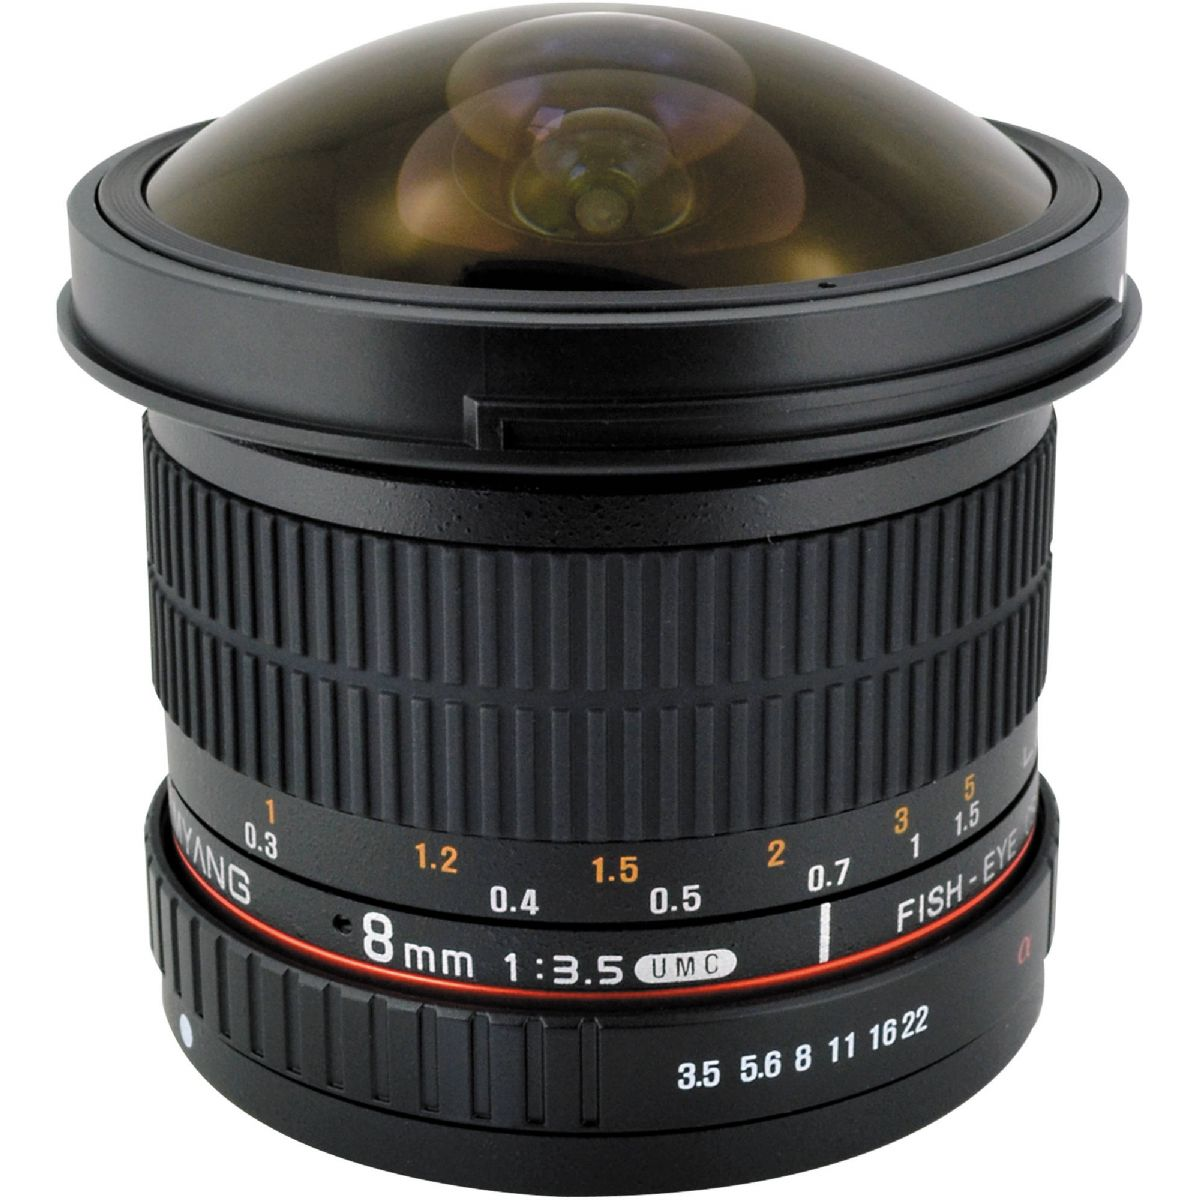 SAMYANG 8 mm f/3,5 UMC Fish-eye CS II